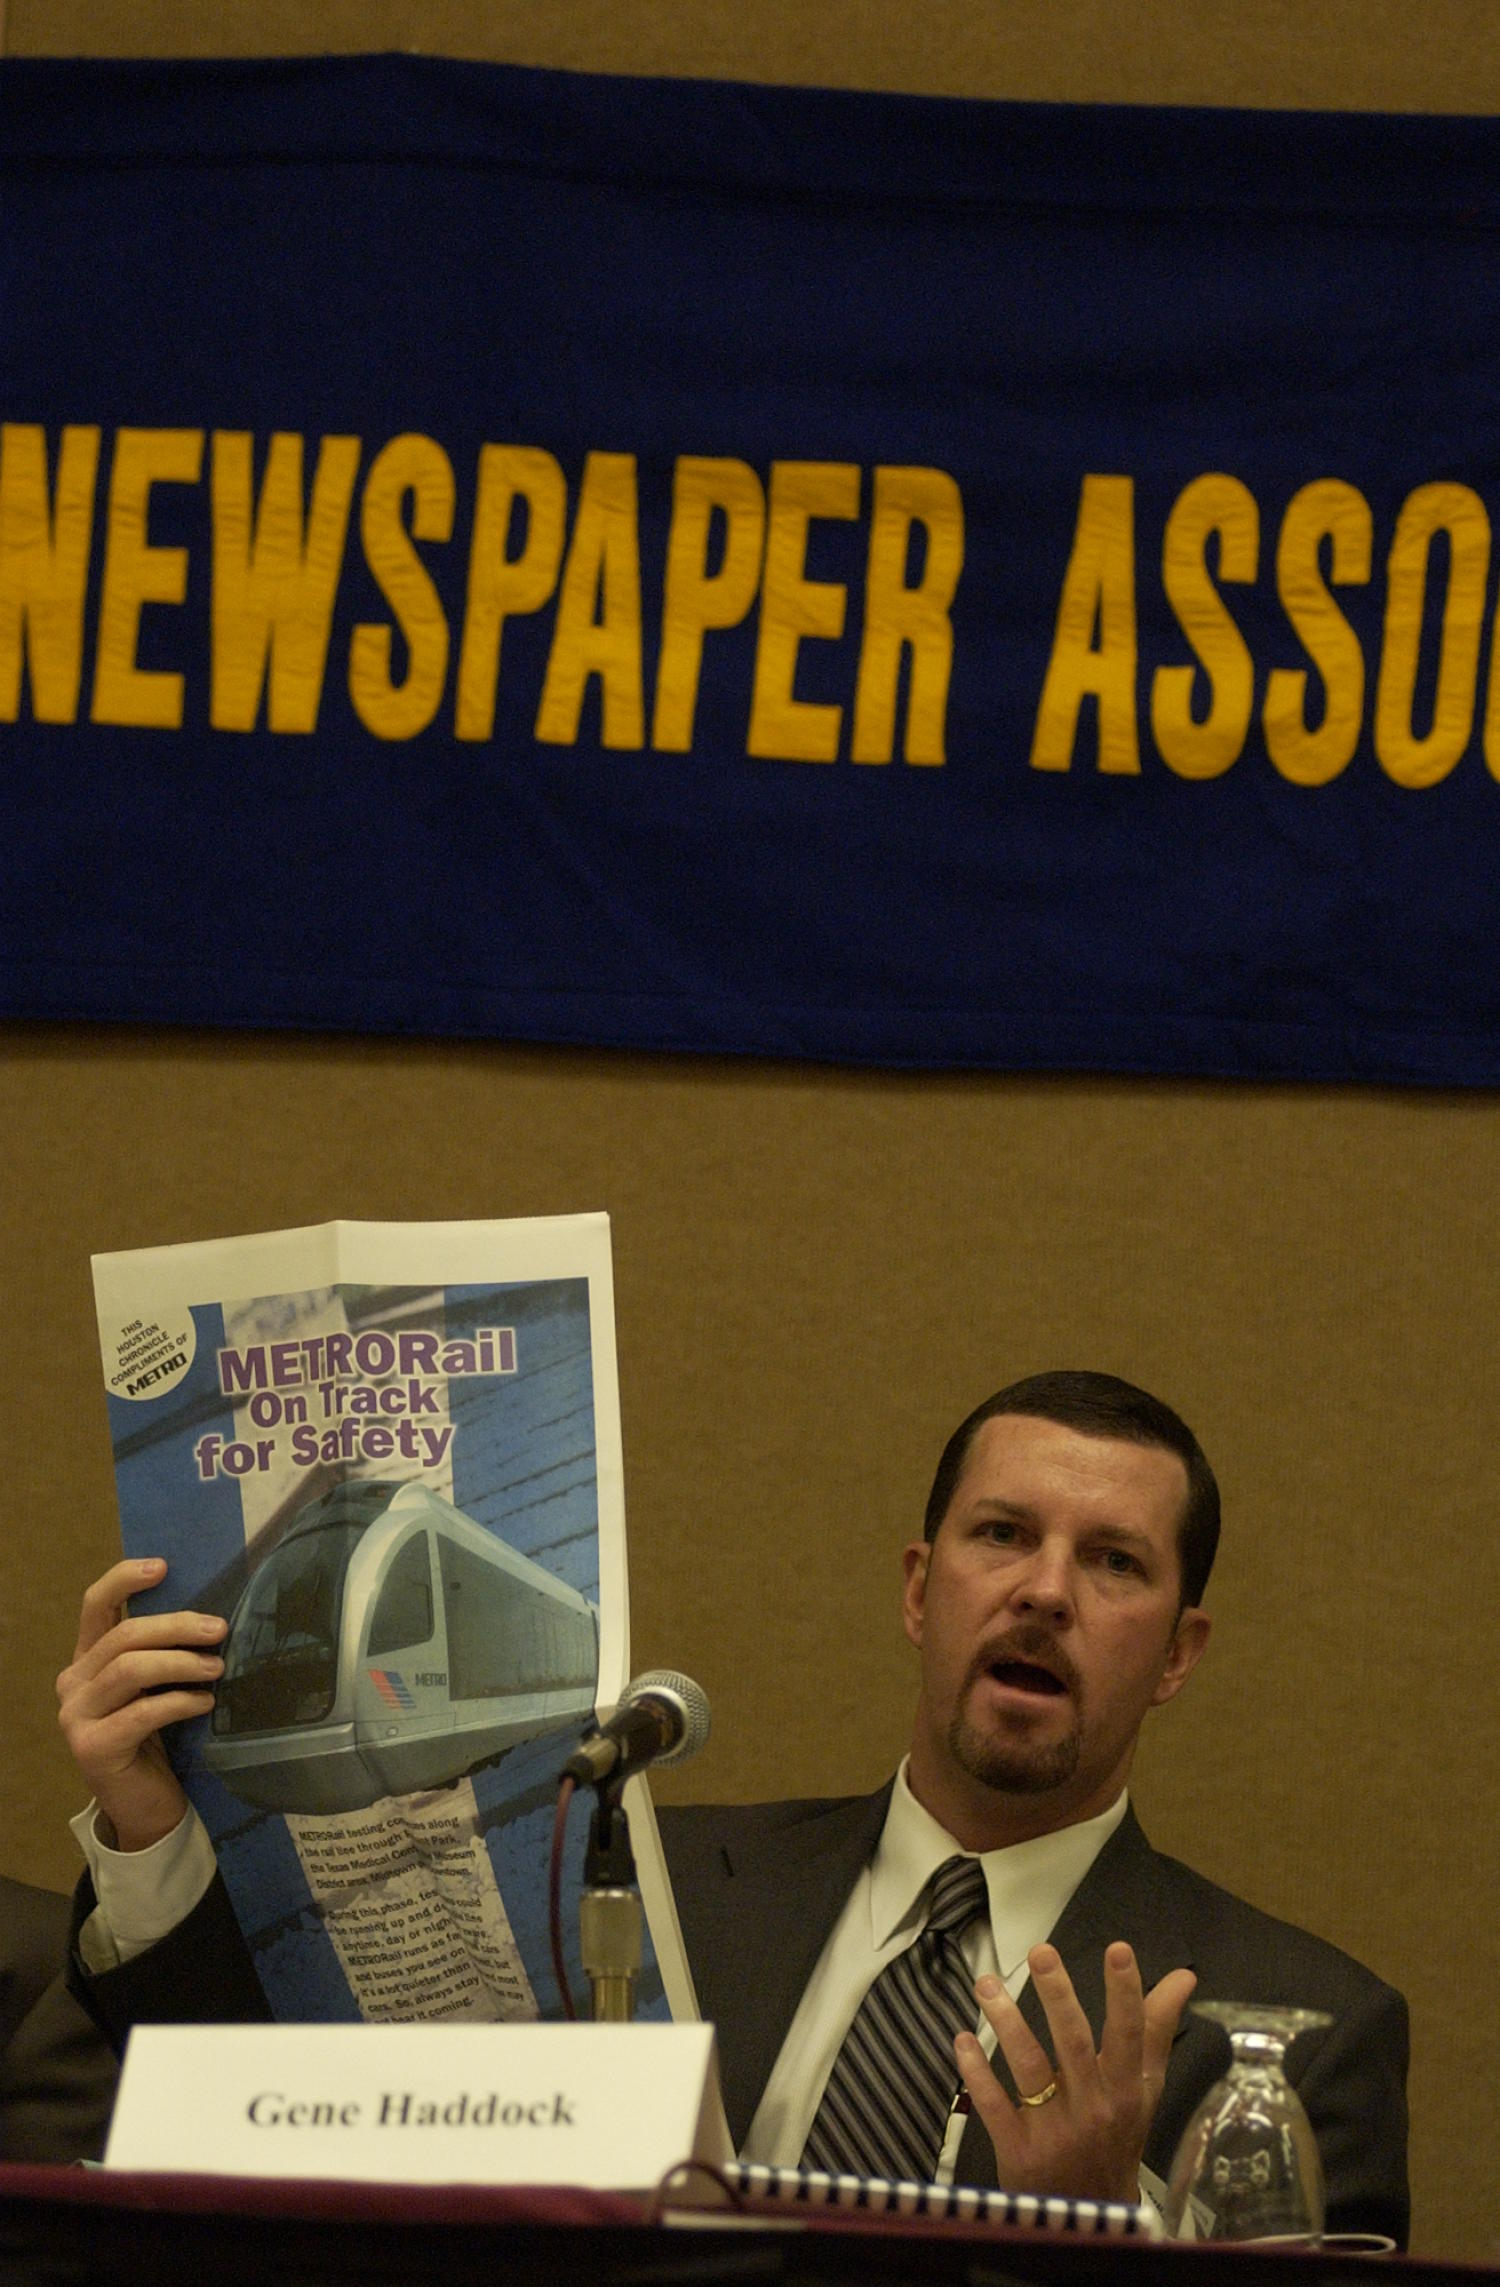 [Photograph of Gene Haddock], Photograph of Gene Haddock, a guest speaker attending the 2004 Texas Daily News Association annual conference held in Corpus Christi. Haddock is seen sitting behind a table and in front of a microphone and holding up a newspaper as he address the crowd during the conference.,